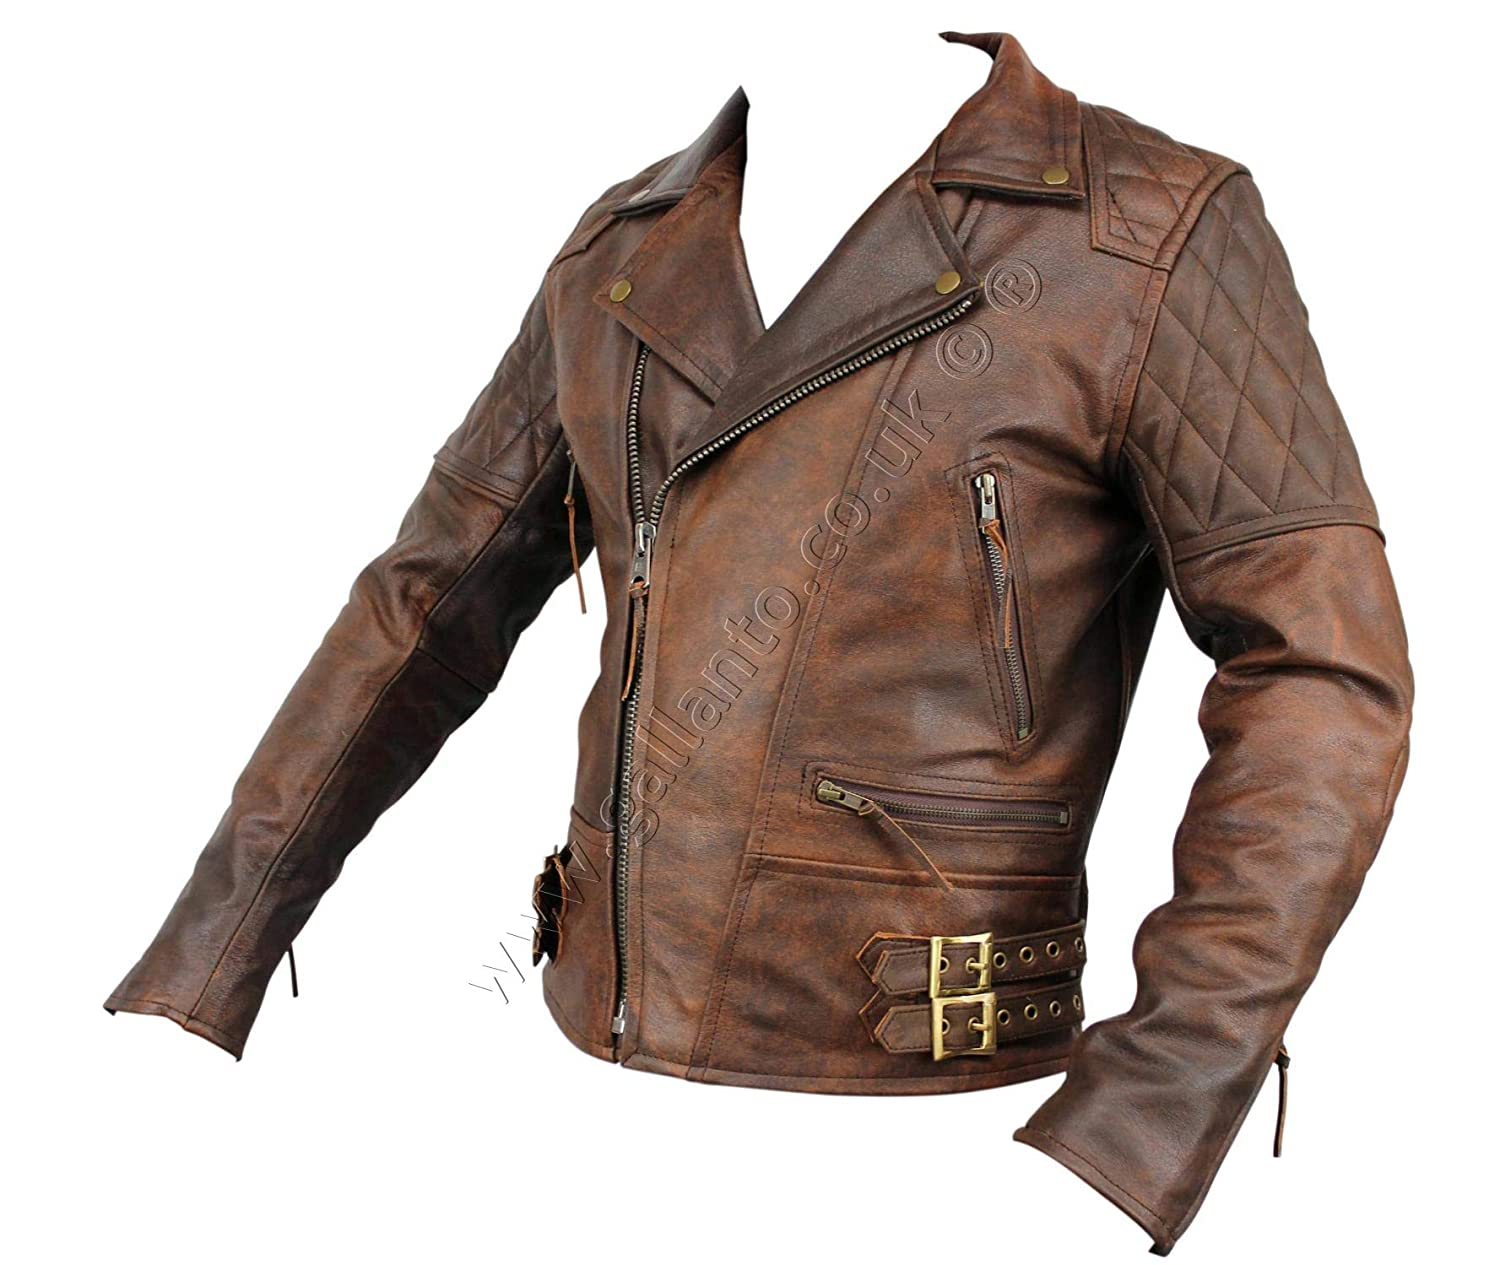 d61beada244 Gallanto Vintage Brown Classic Diamond Armoured Motorcycle Biker Leather  Jacket (S)  Amazon.co.uk  Clothing